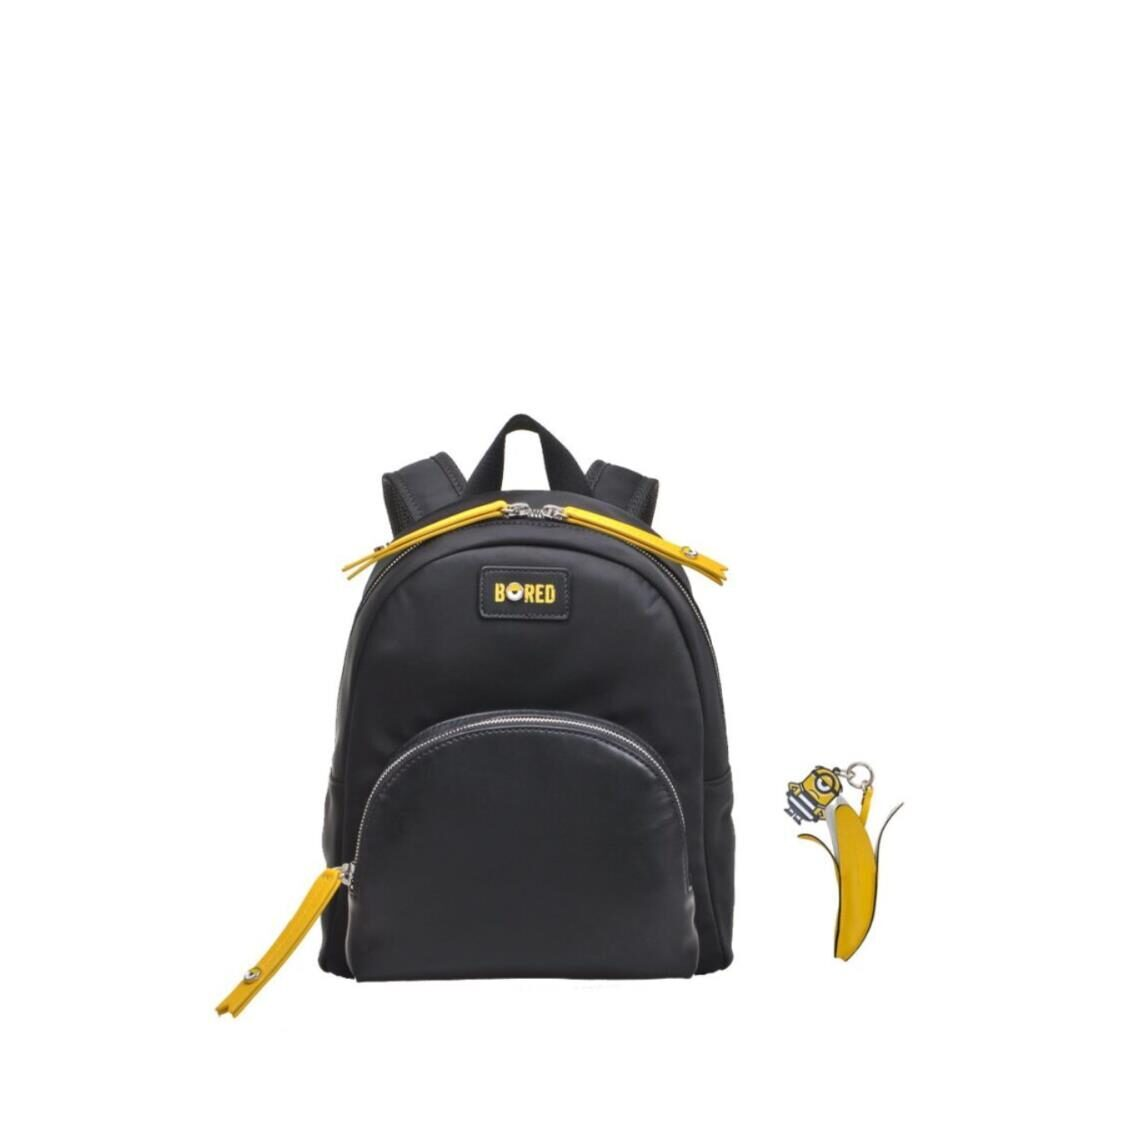 Fion Minions Jacquard with Leather Backpack - FAAFIPJ016BLKYLWZZ